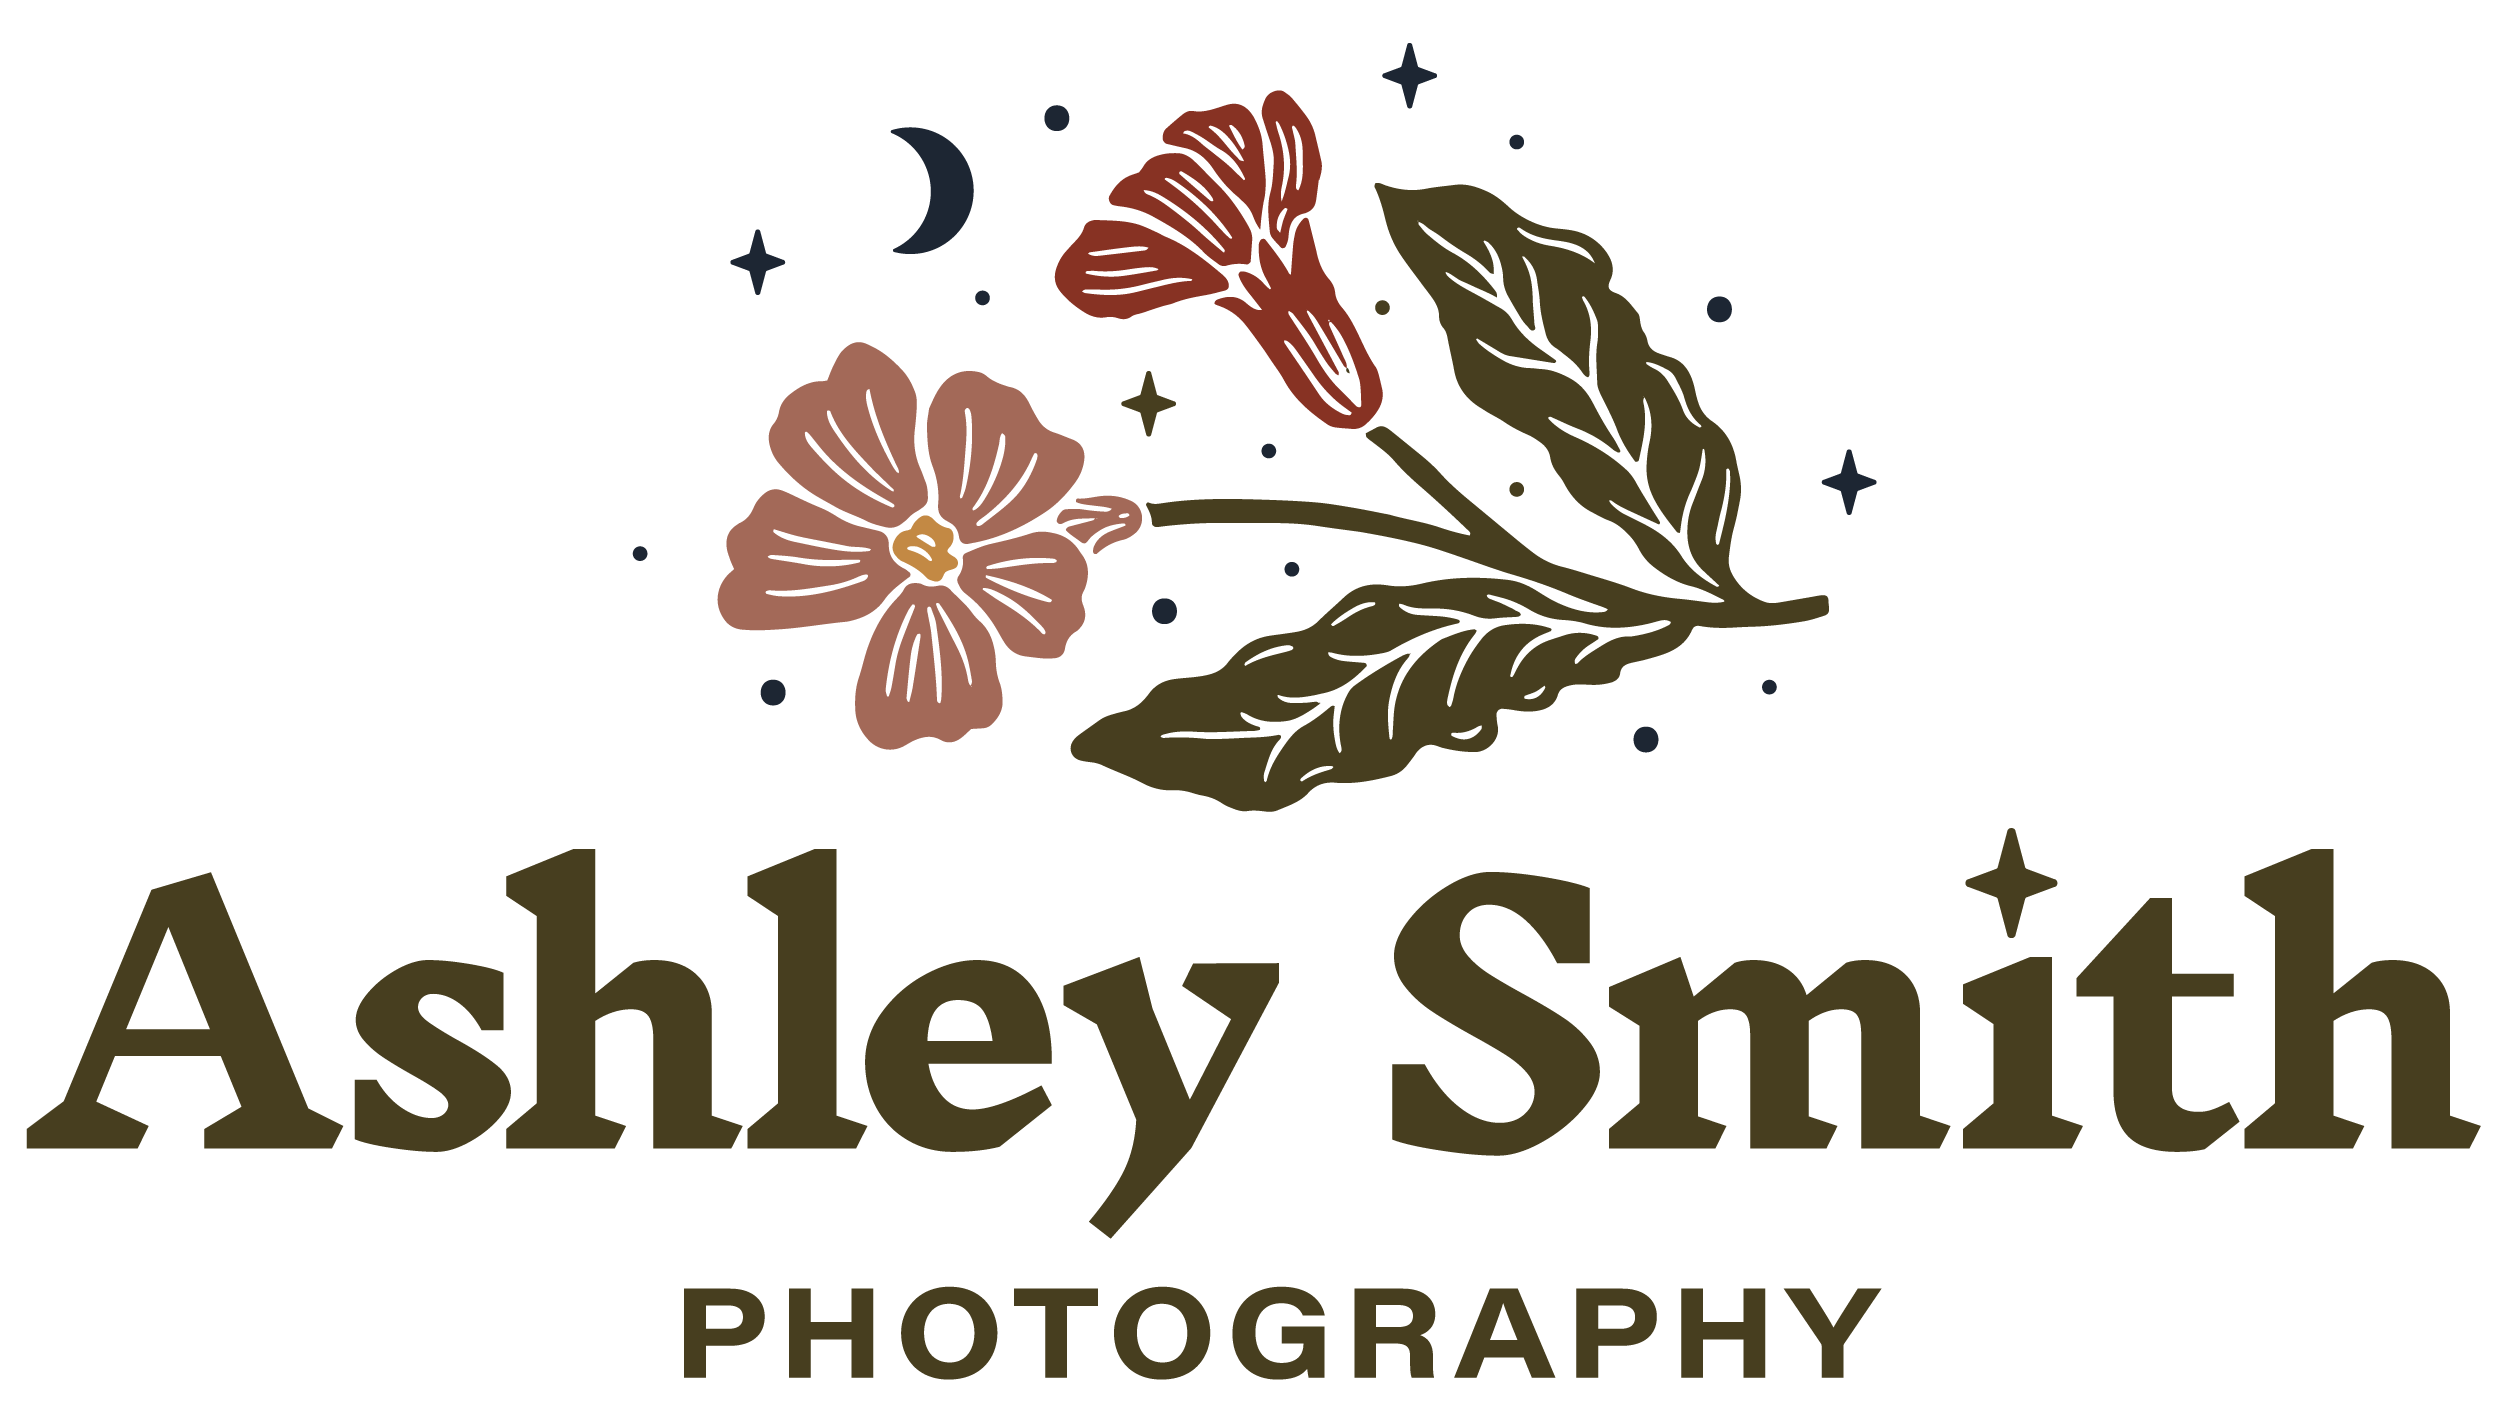 Ashley Smith Photography